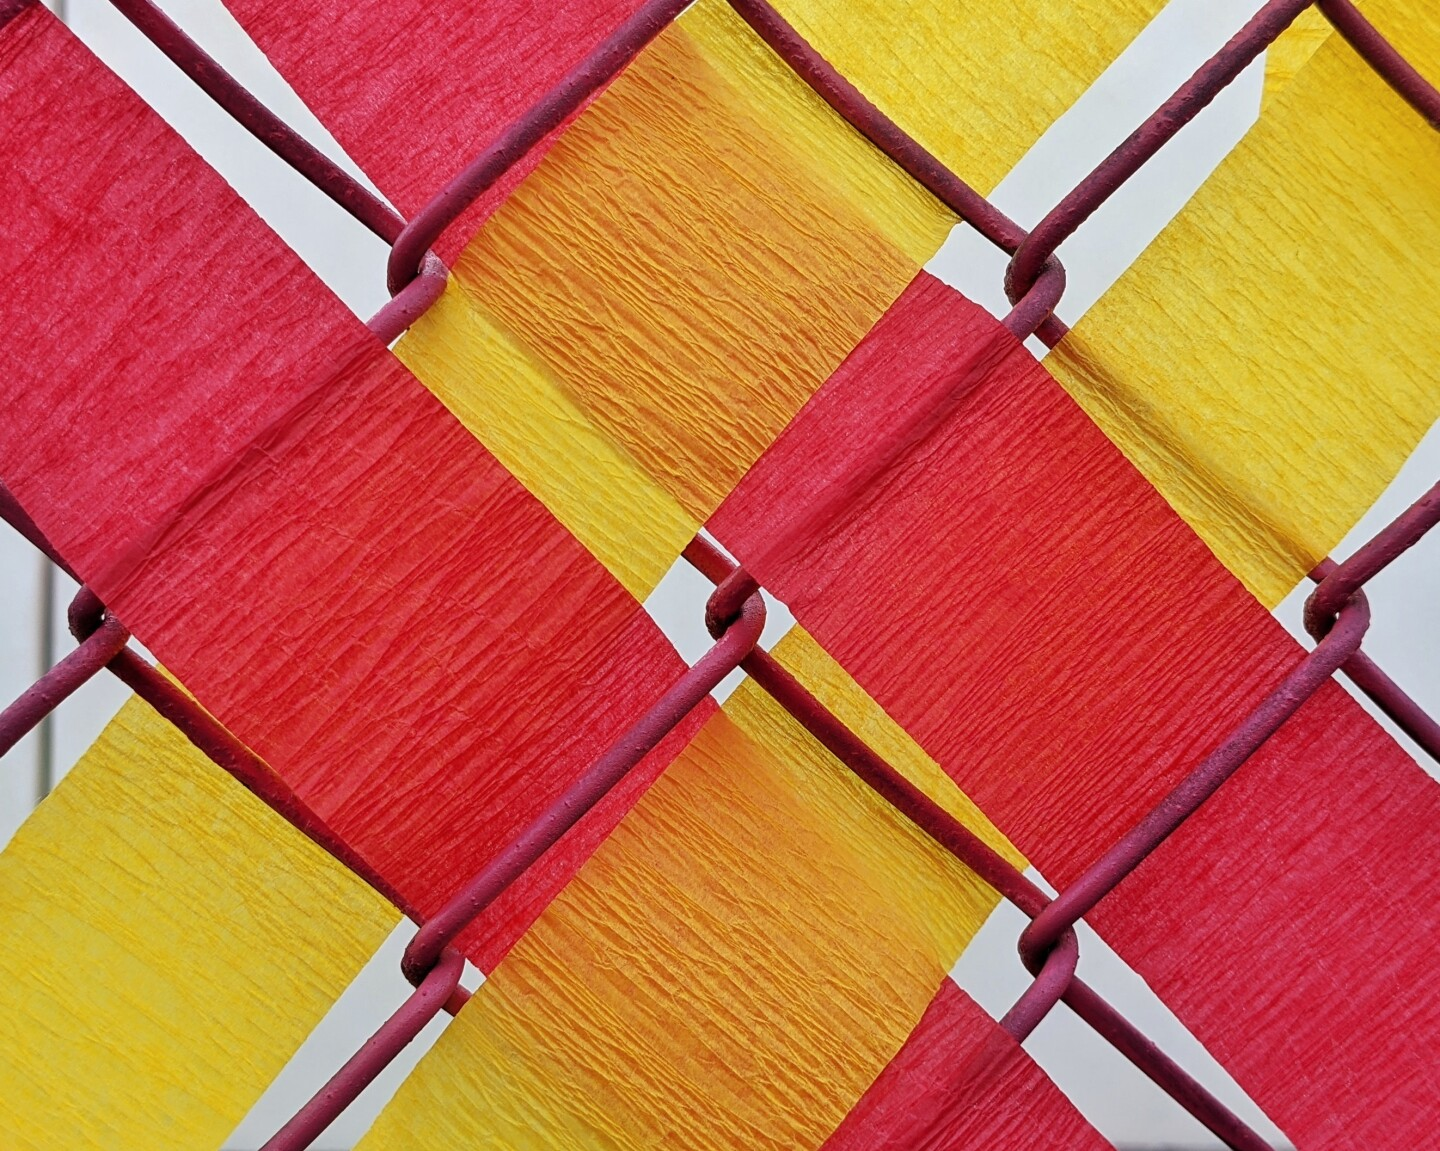 Pieces of red and yellow paper are woven in a pattern on a fence.